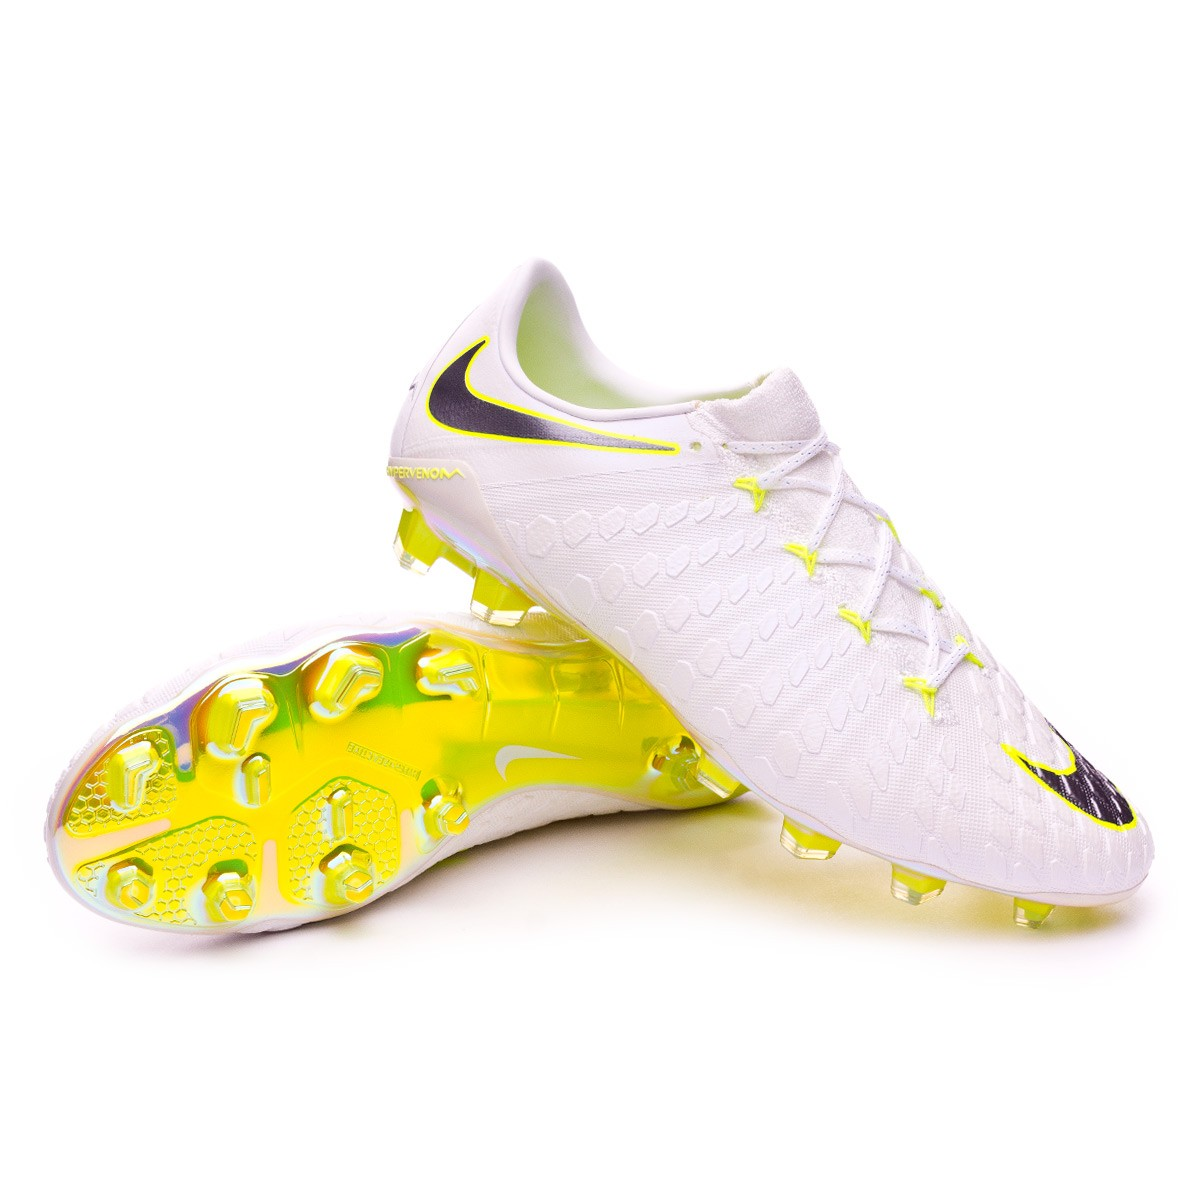 Boot Nike Hypervenom Phantom III Elite FG White-Metallic cool grey ... e671e2d6341a3